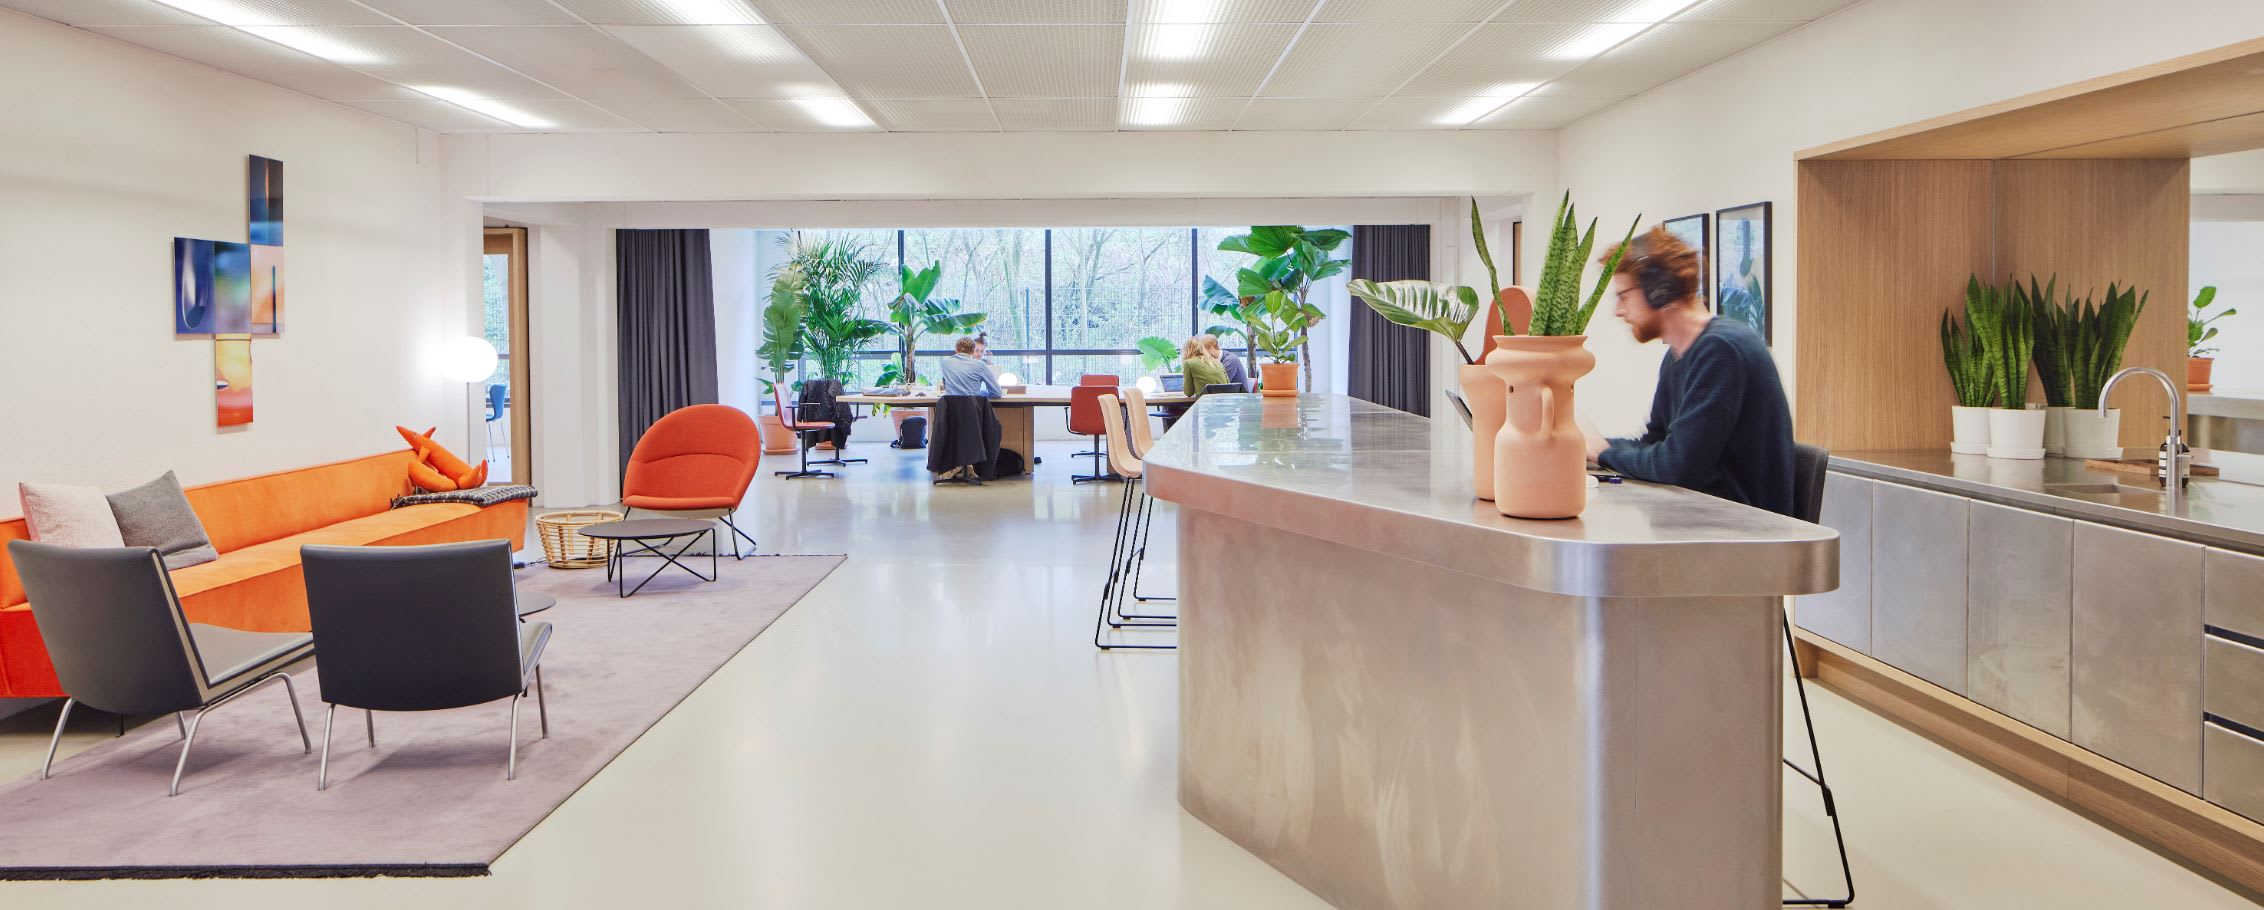 Spaces Amstel: how flexible workspace re-energised four brick walls